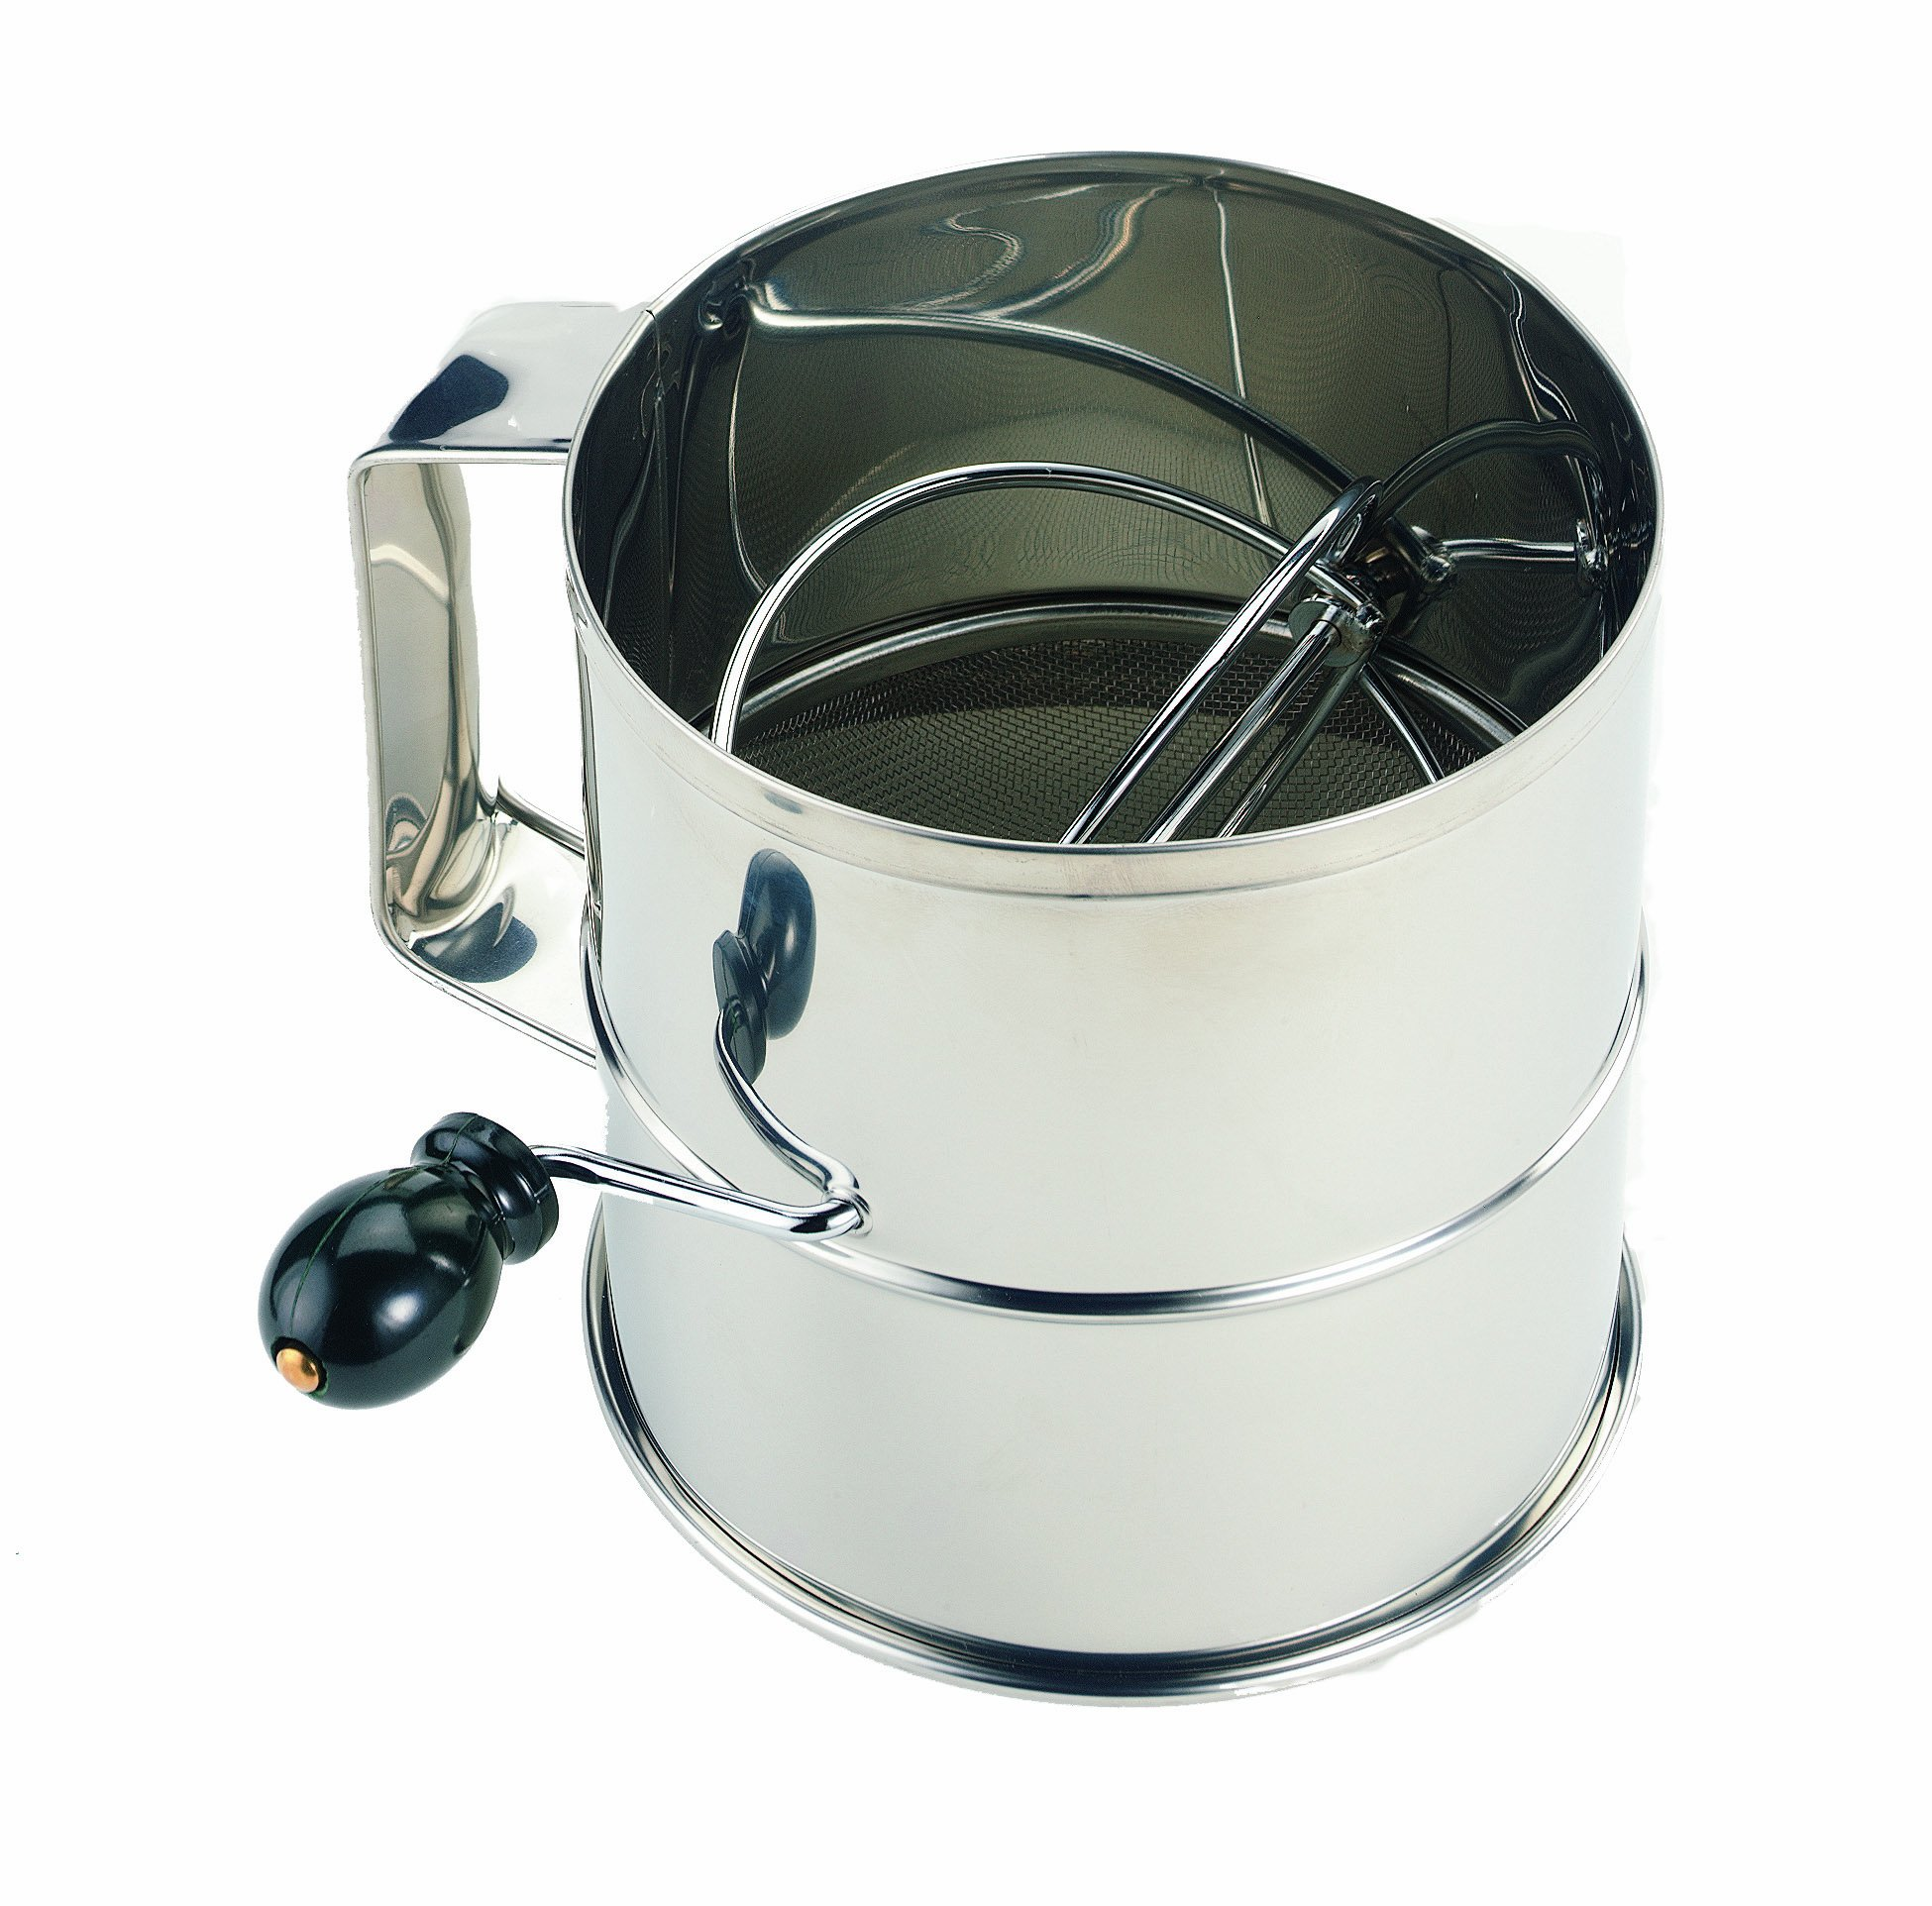 Crestware 8 Cup Stainless Steel Flour Sifter by CRESTWARE